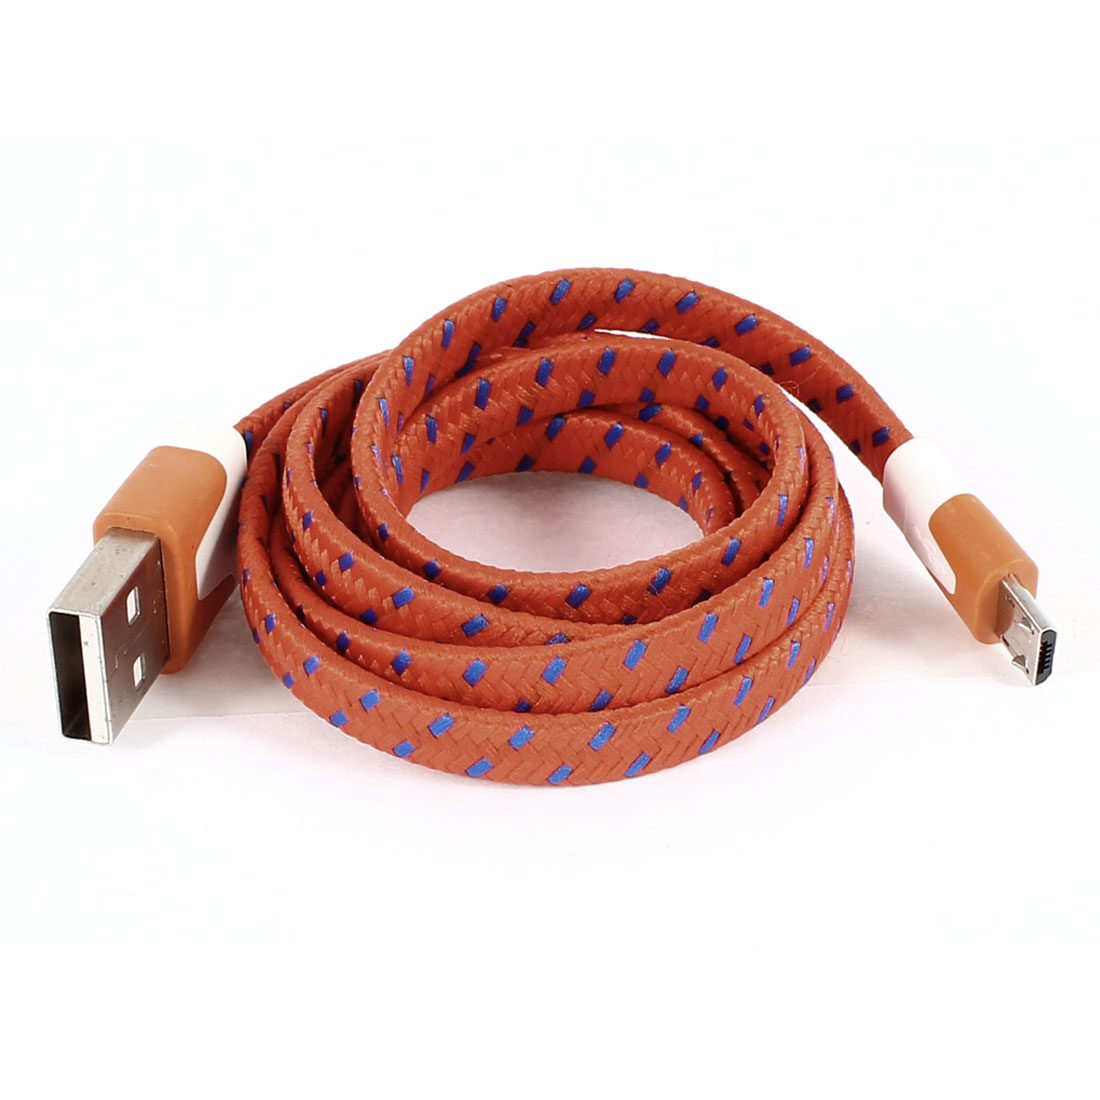 Unique Bargains Orange USB 2.0 Type A Male to Micro USB Male Flat Data Sync Charging Cable 1M